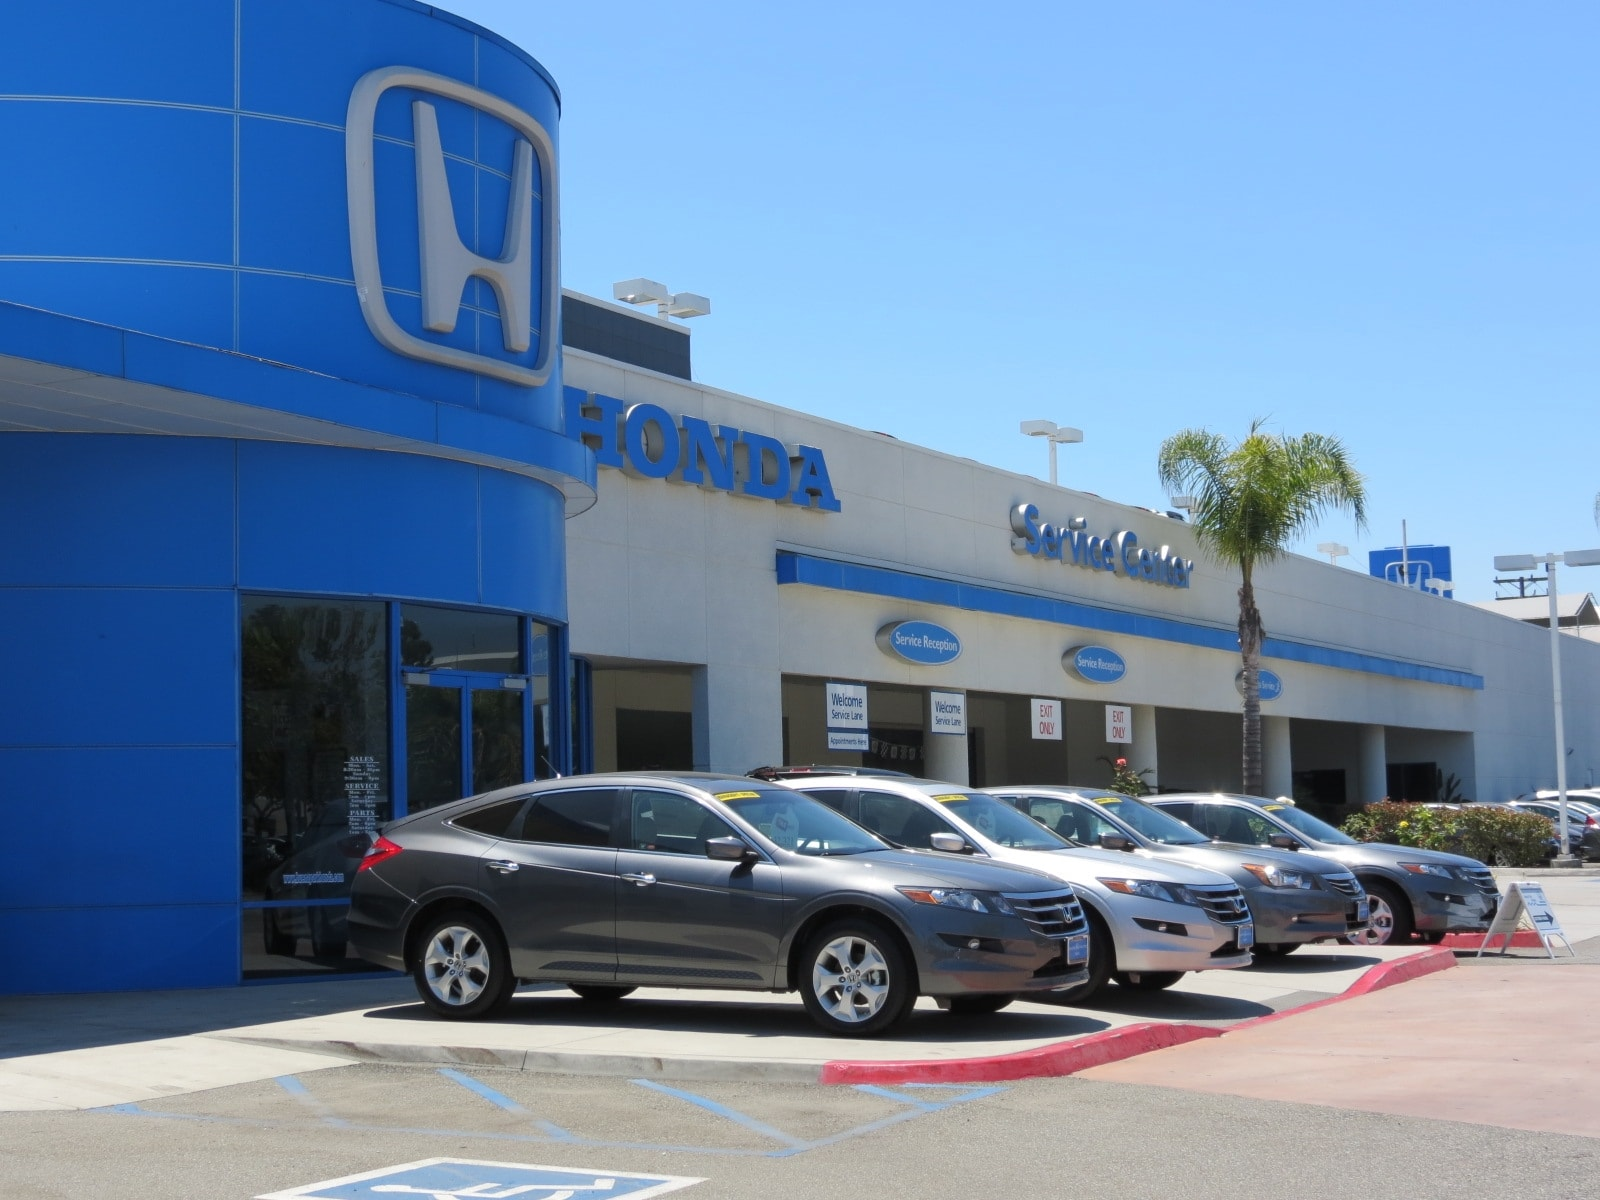 Honda Dealership Orange County >> Used Cars In Orange County Buena Park Honda